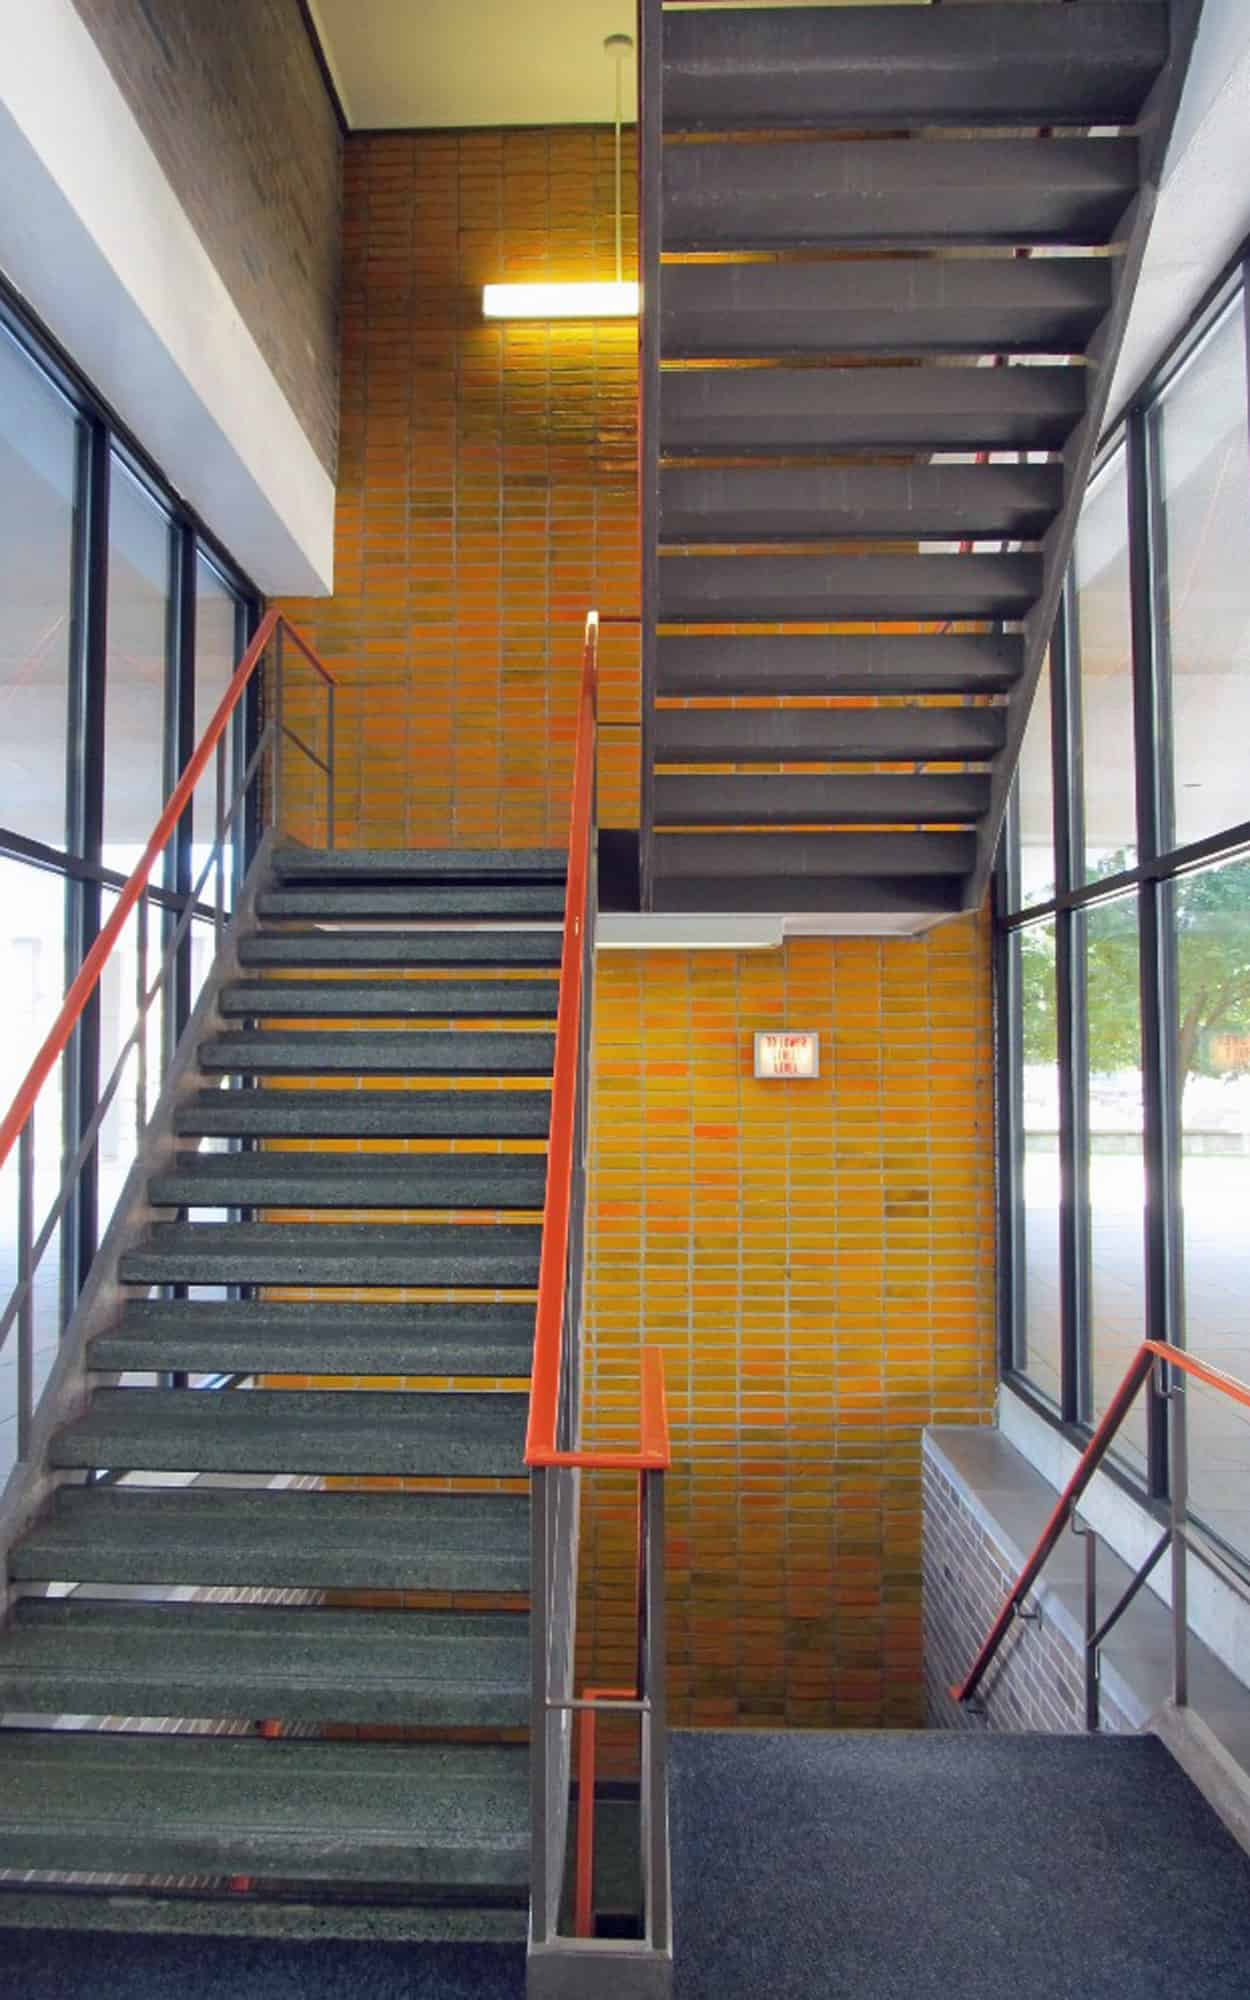 Ground floor stairwell (glazed brick, plate glass, terrazzo flooring)